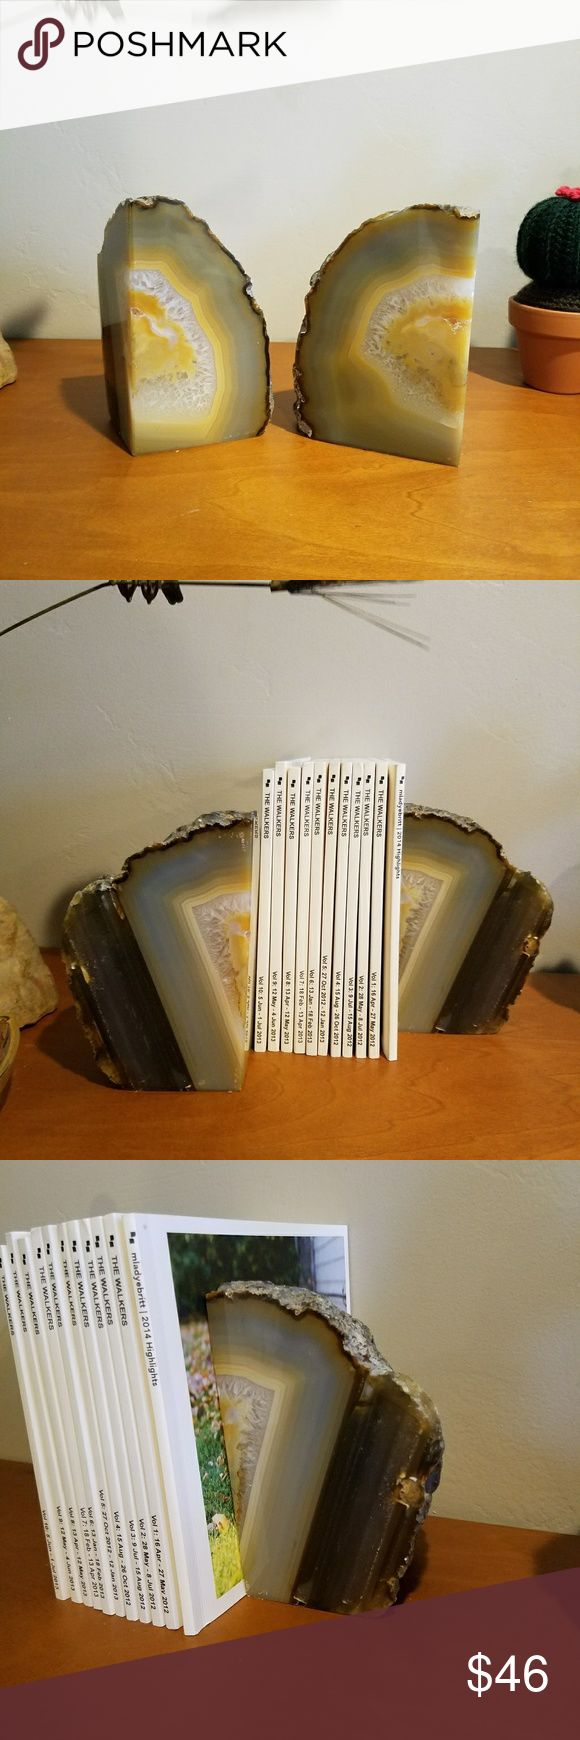 Vintage agate bookends Vintage agate bookends or shelf accent. Other